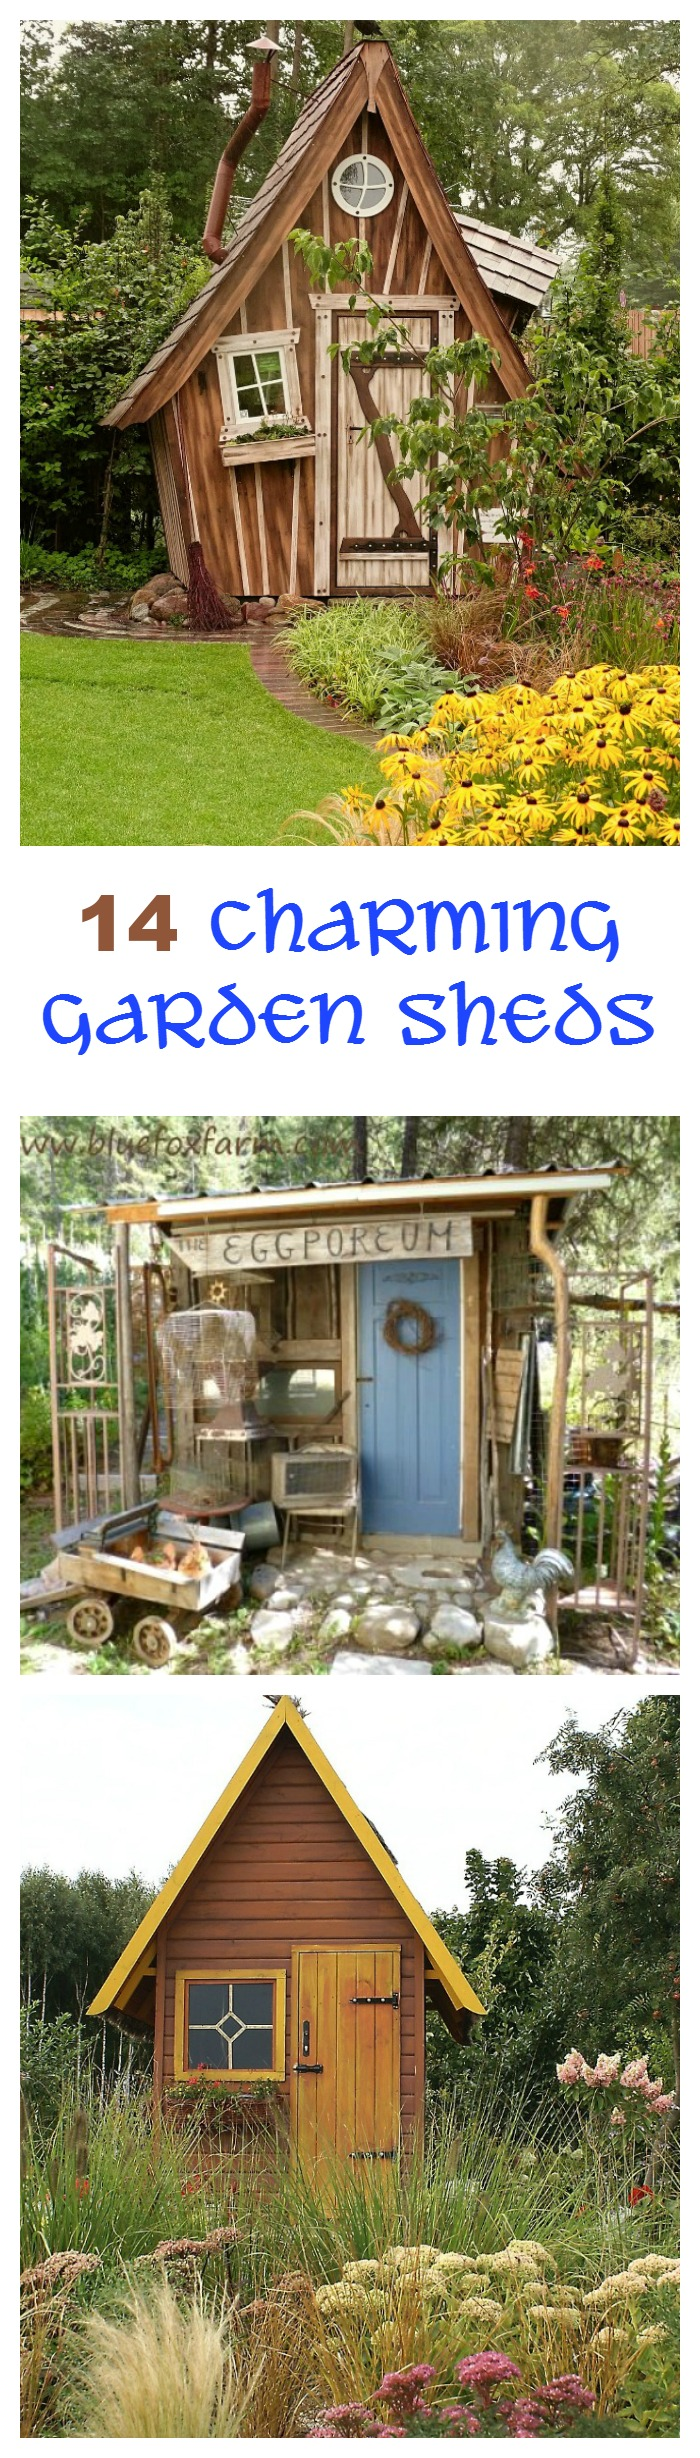 Garden Sheds Pictures garden sheds add a whimsical touch to a back yard